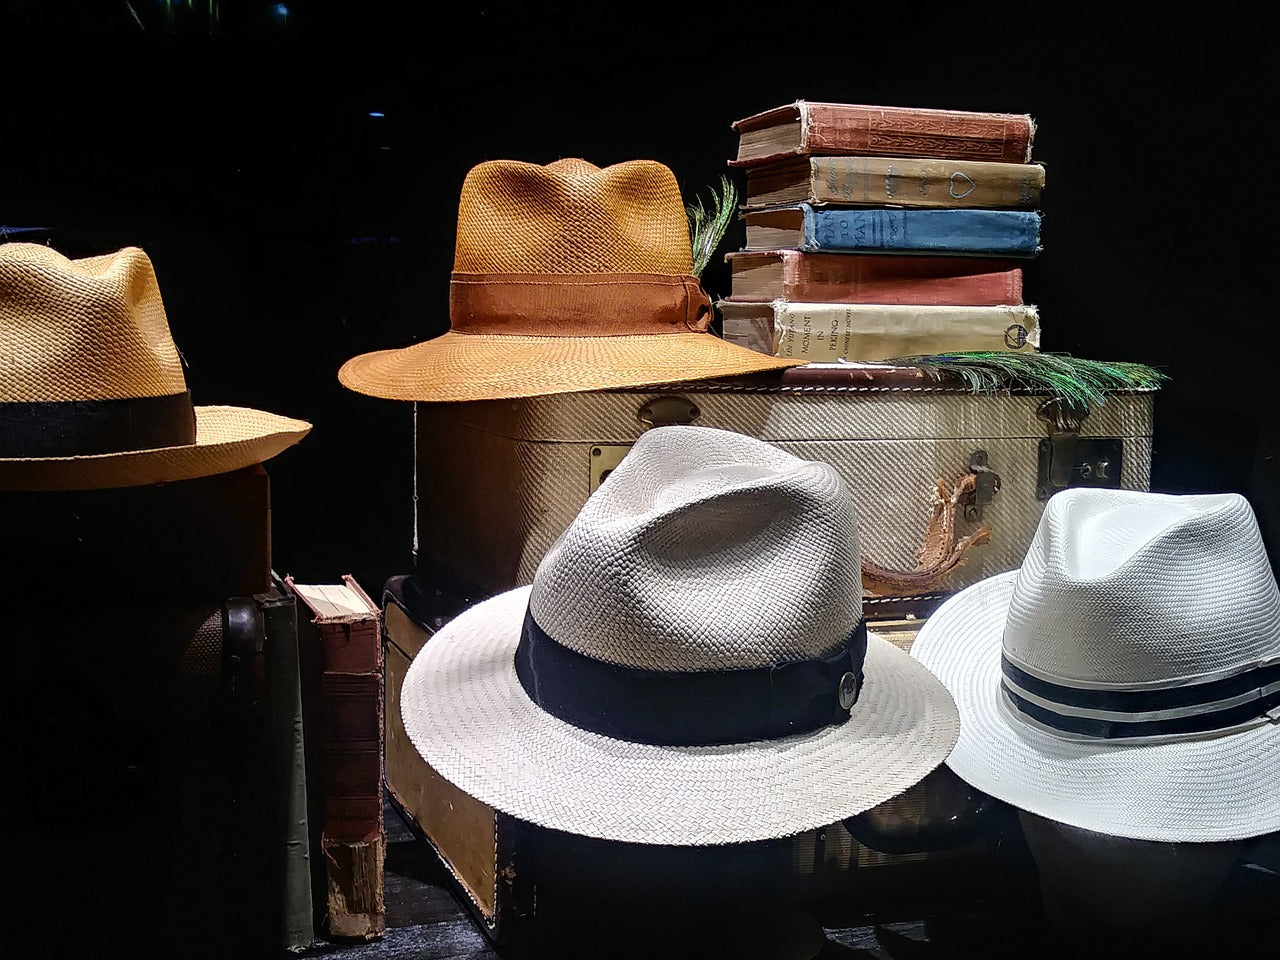 Fedora vs Panama Hats - What is the difference?